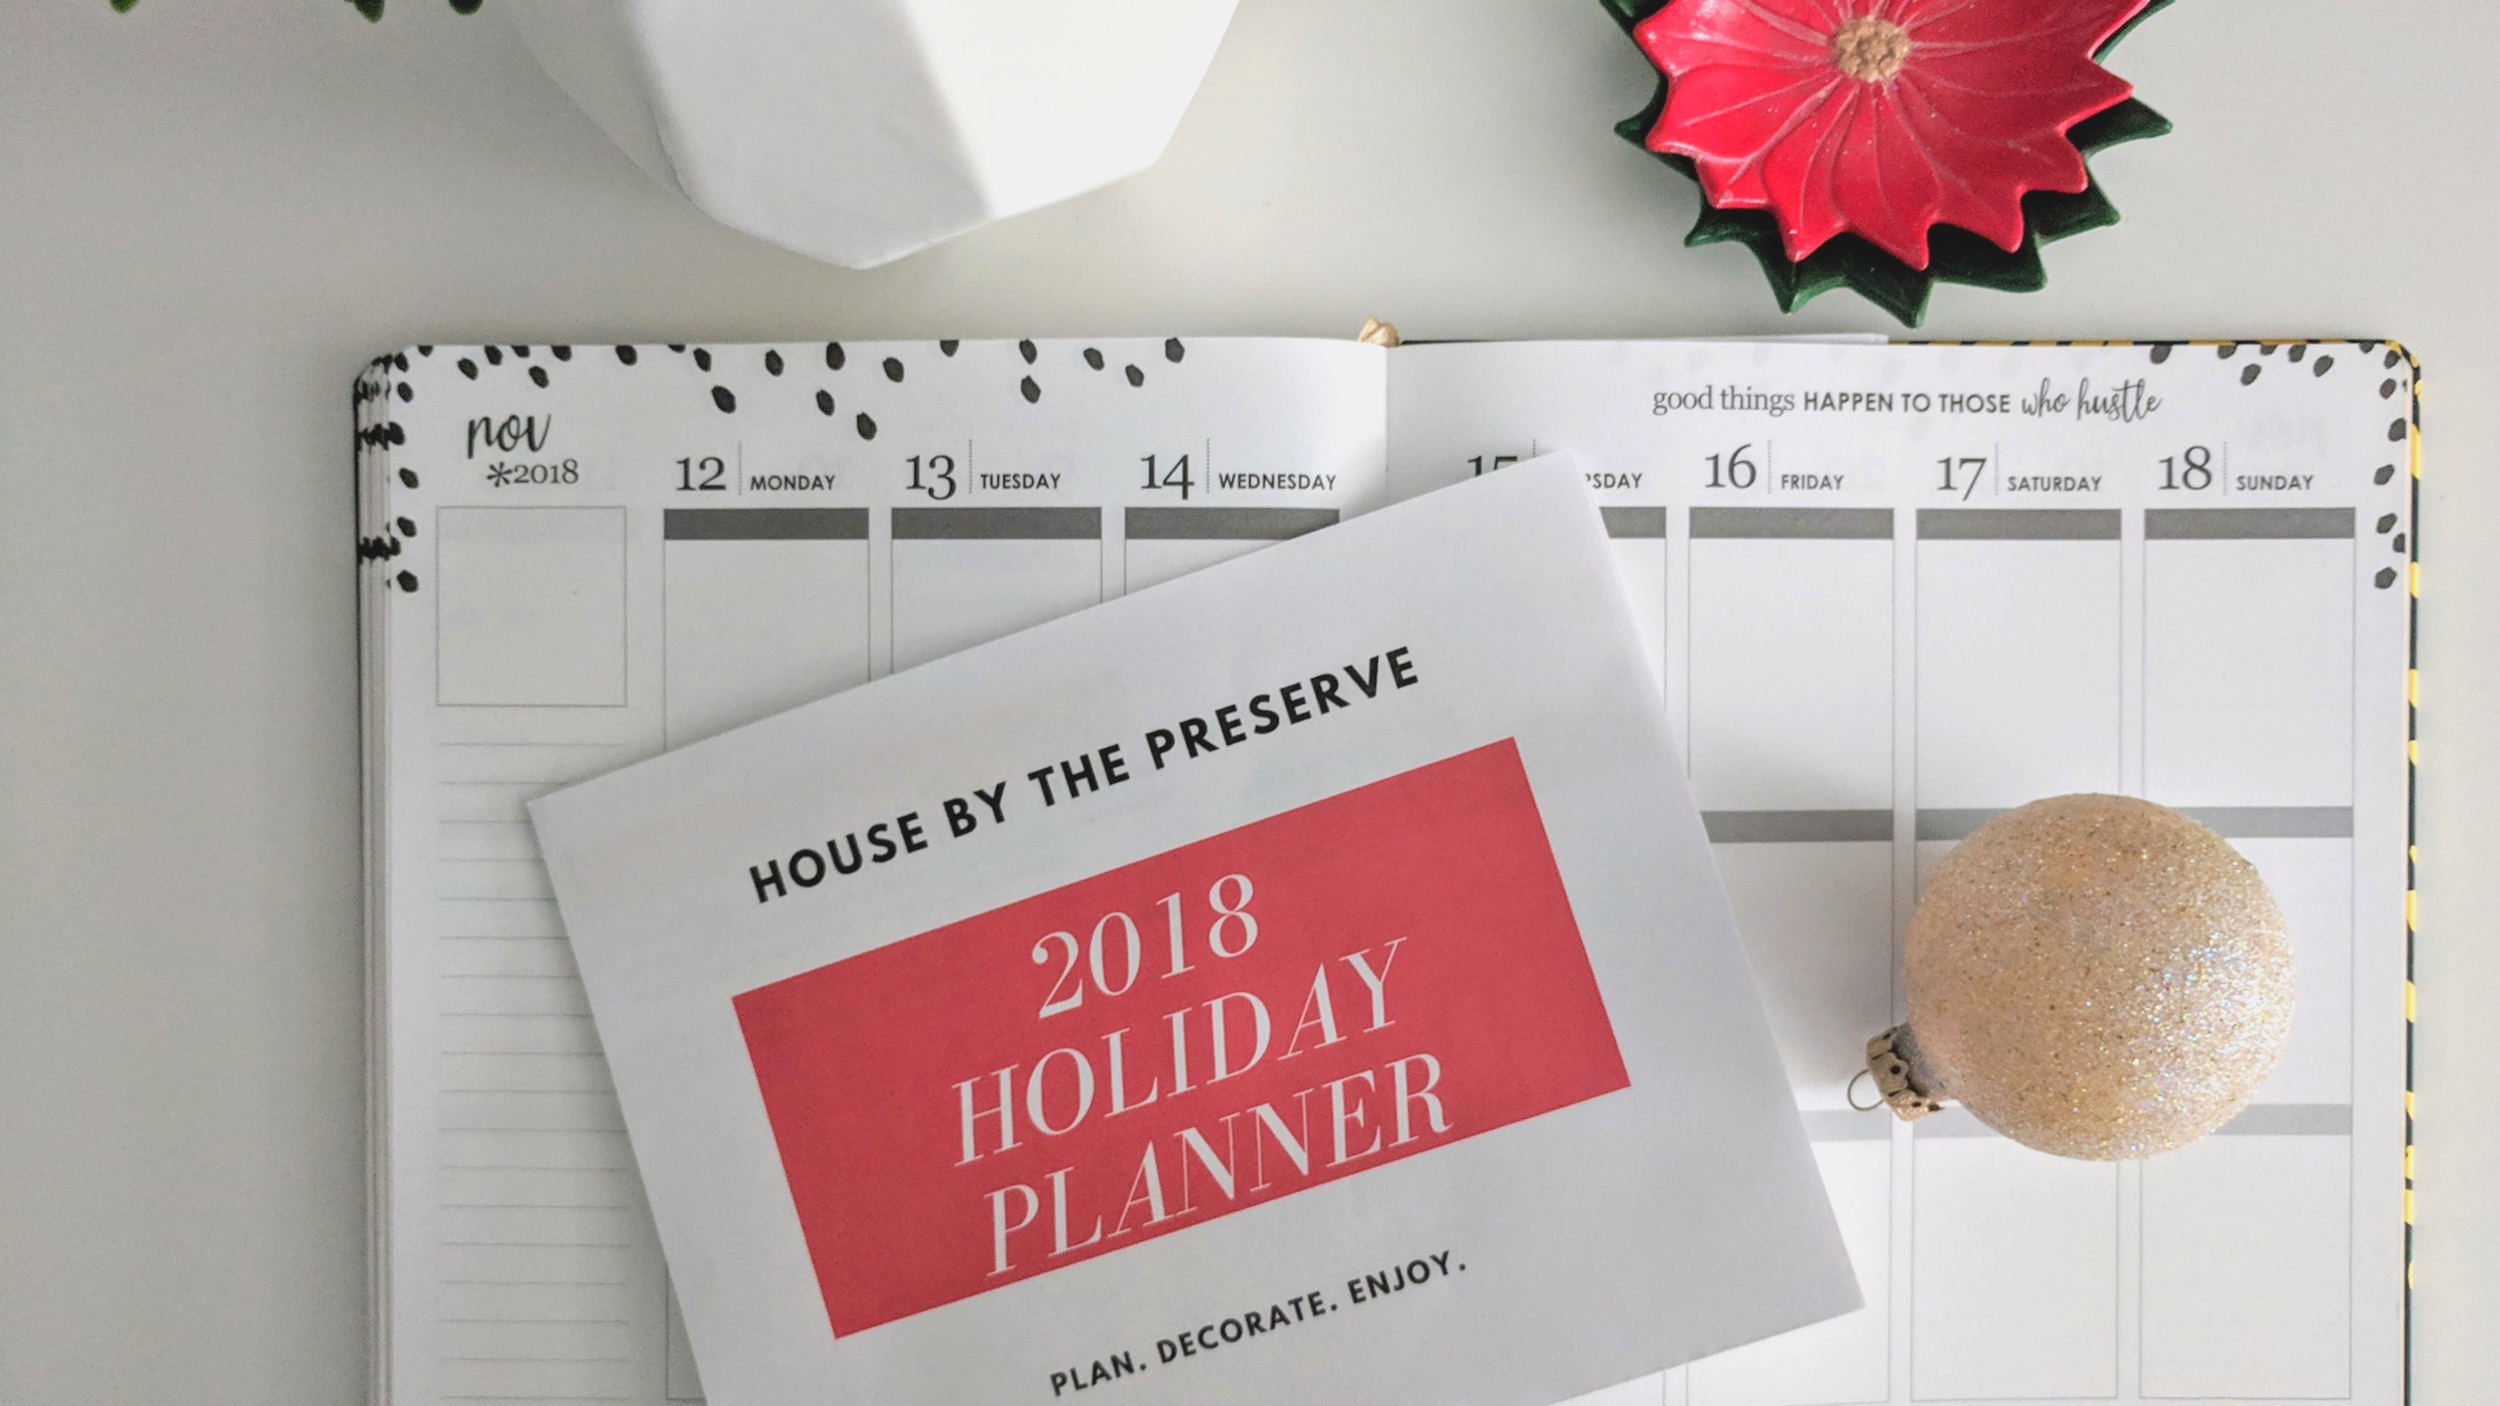 2018 Holiday Planner.png